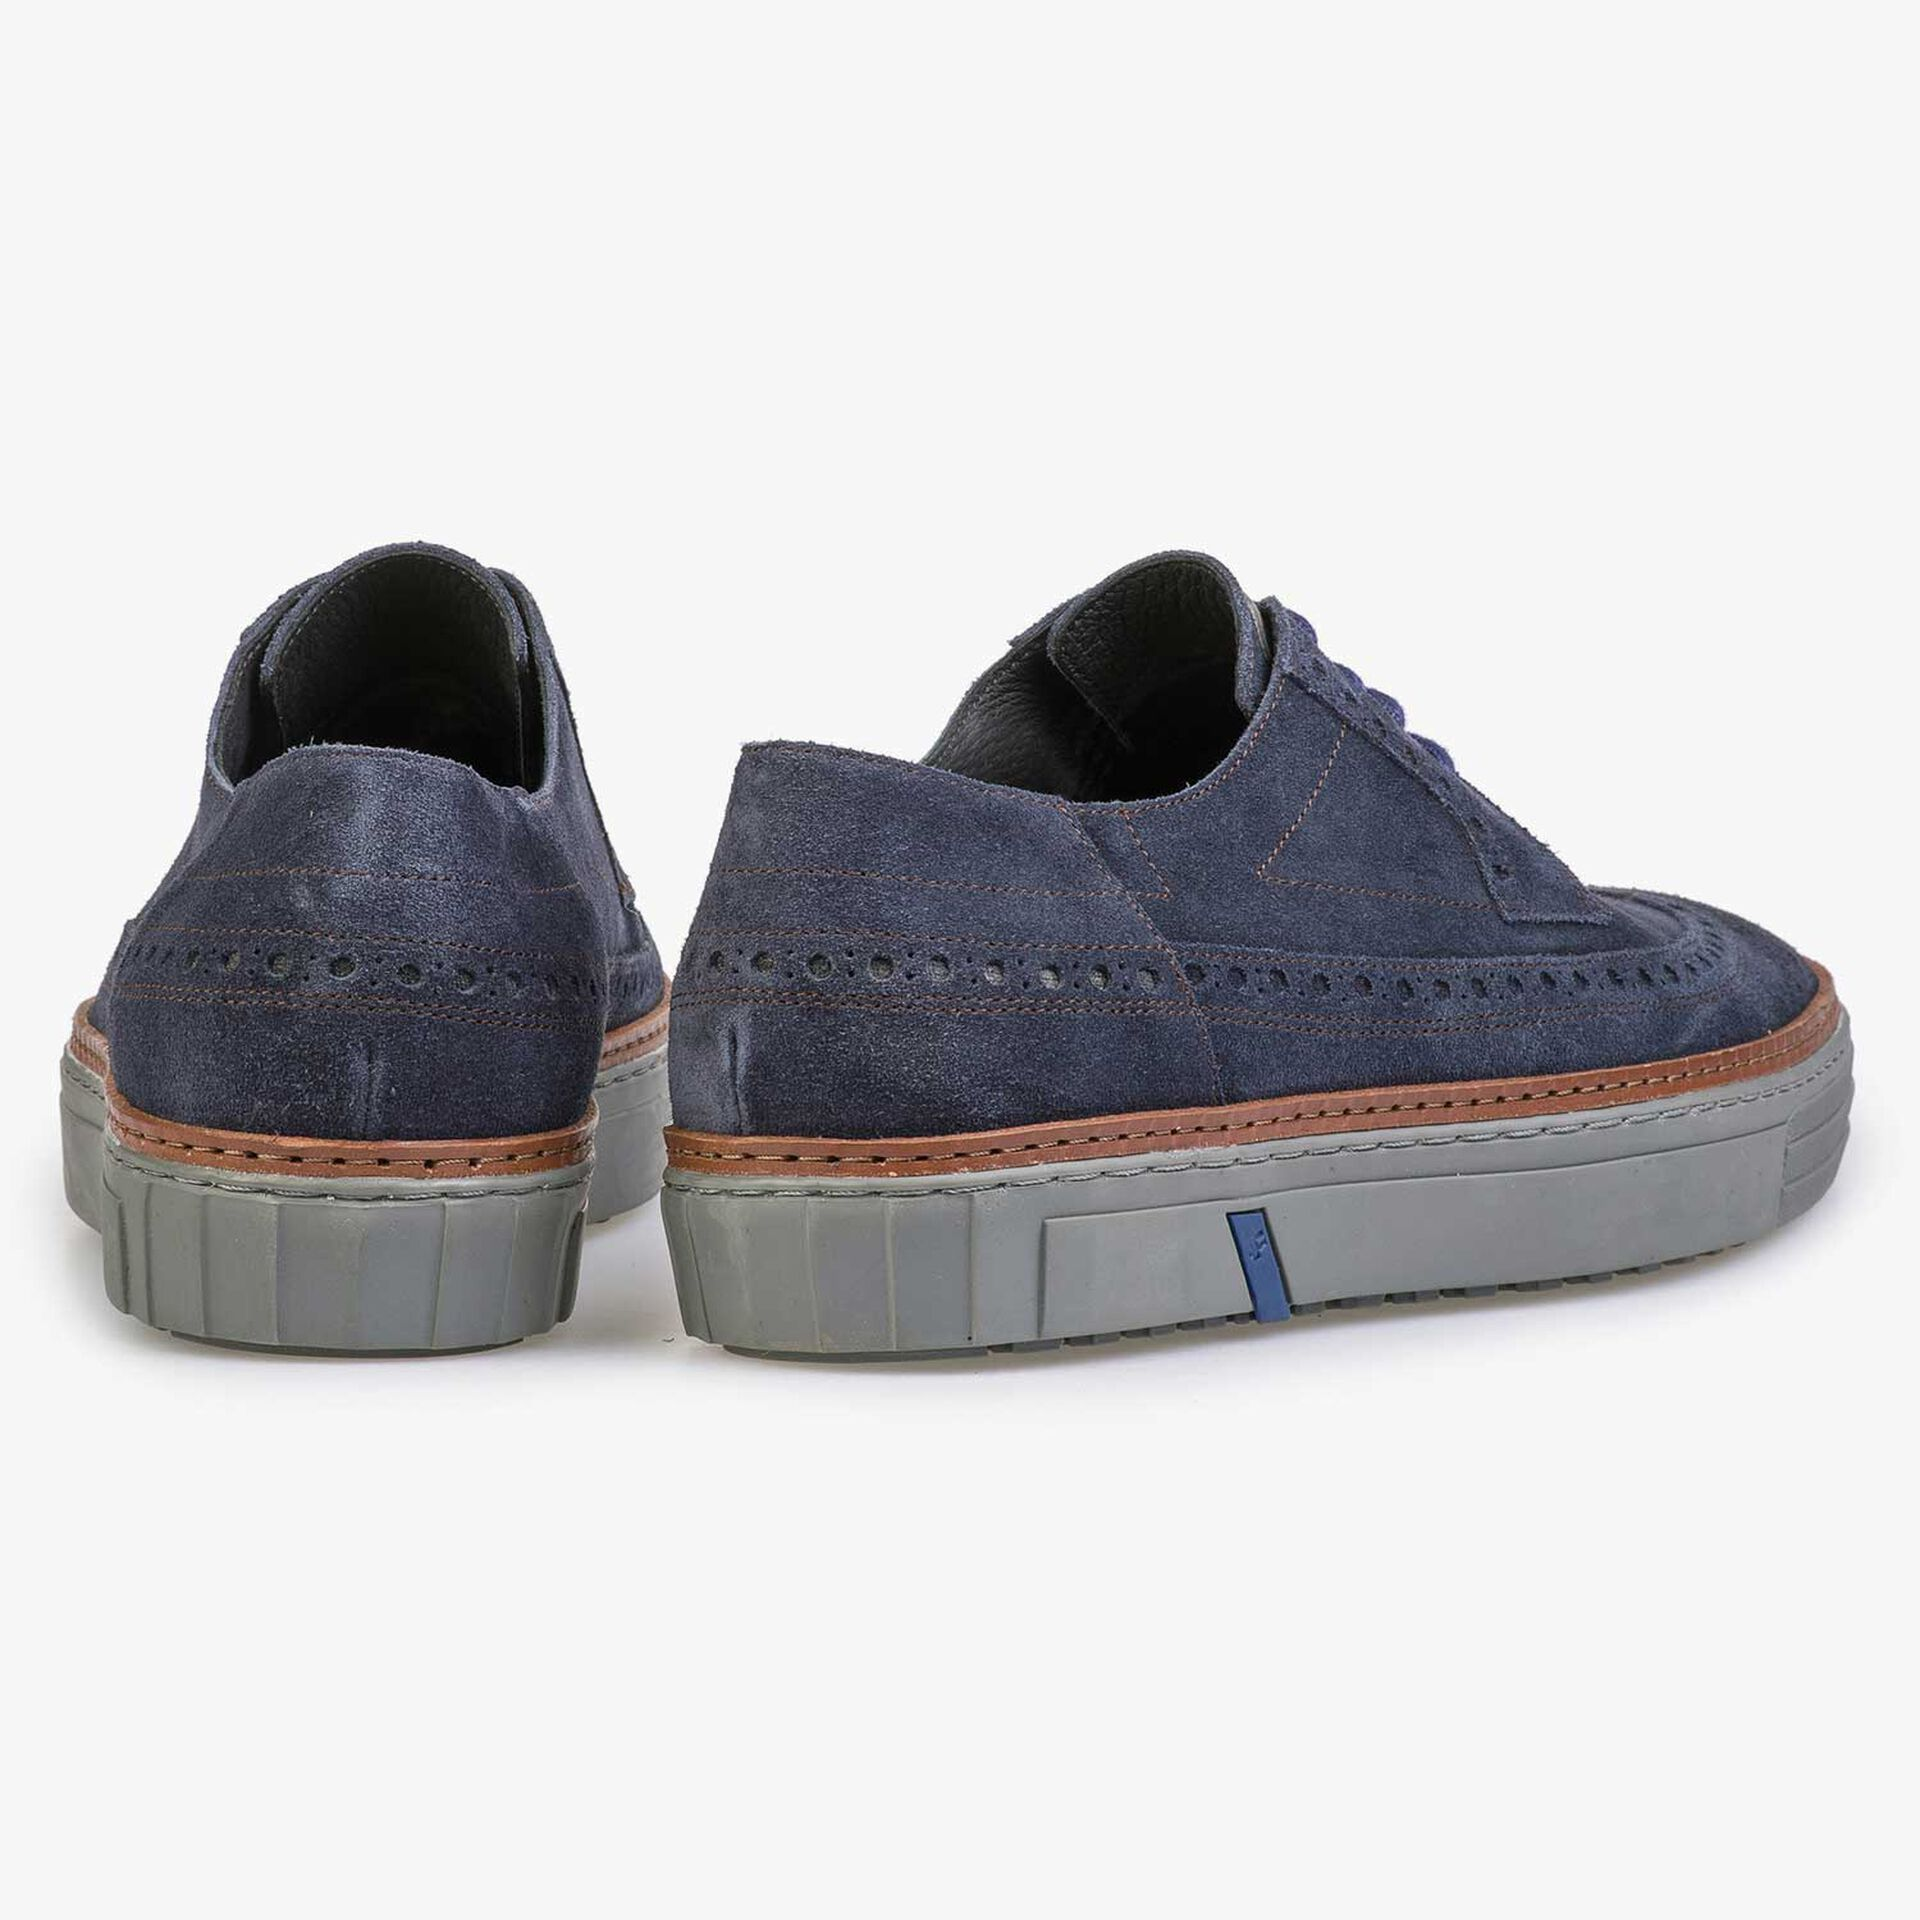 Blue suede sneaker with brogue details